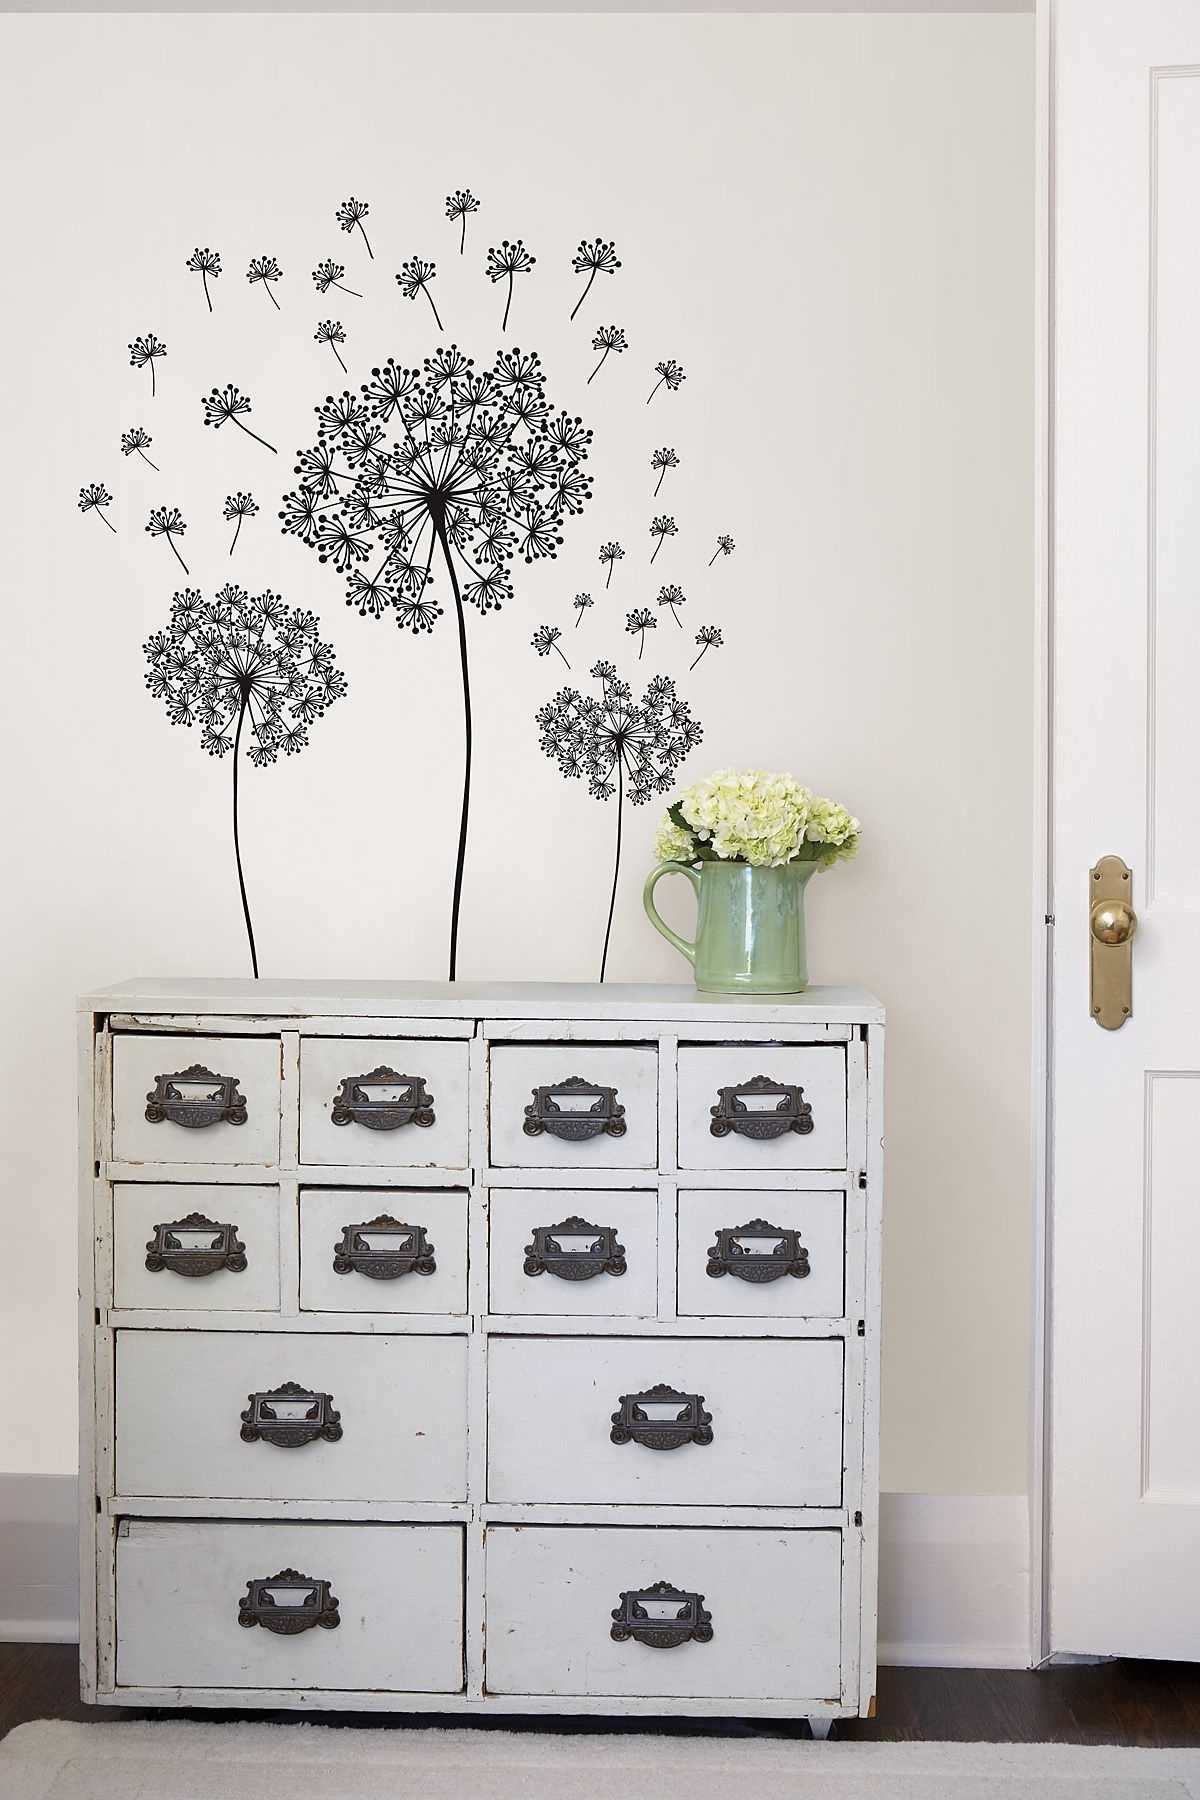 Dandelion Wall Art Sticker Kit Throughout 2018 Dandelion Wall Art (Gallery 18 of 20)